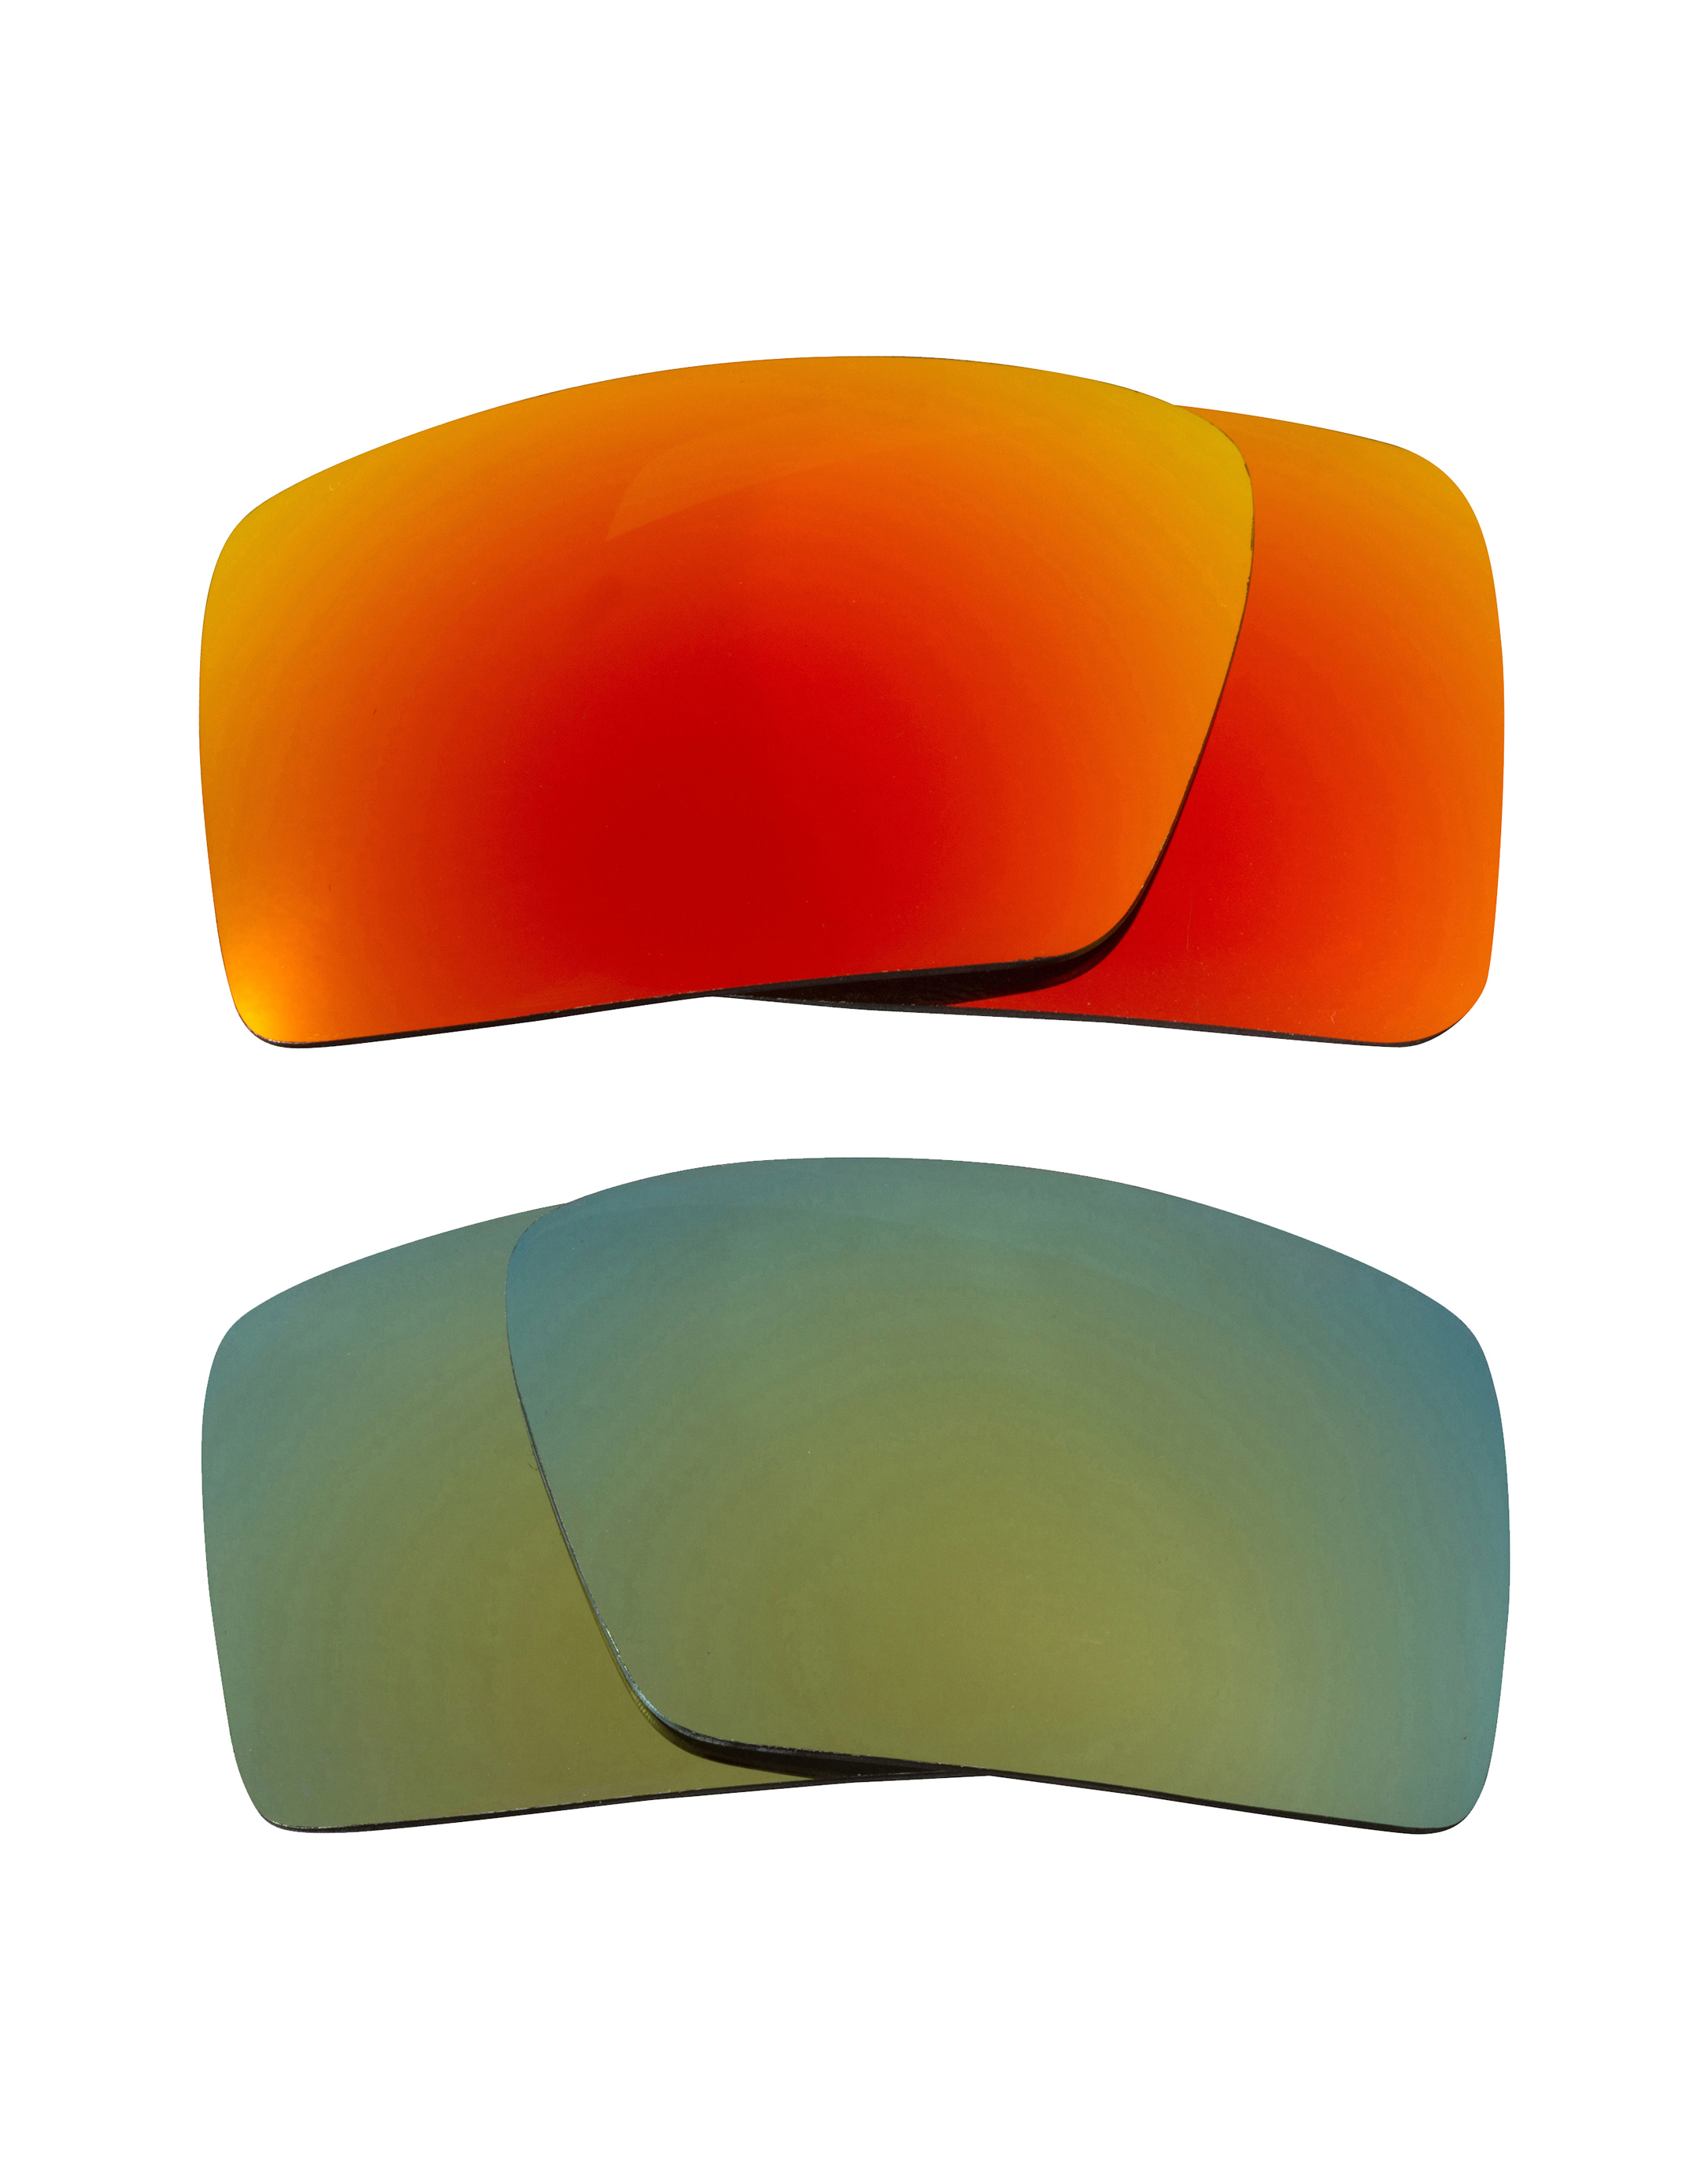 7f9d65b4b8b Eyepatch 1 Replacement Lenses Yellow   Green by SEEK fits OAKLEY Sunglasses